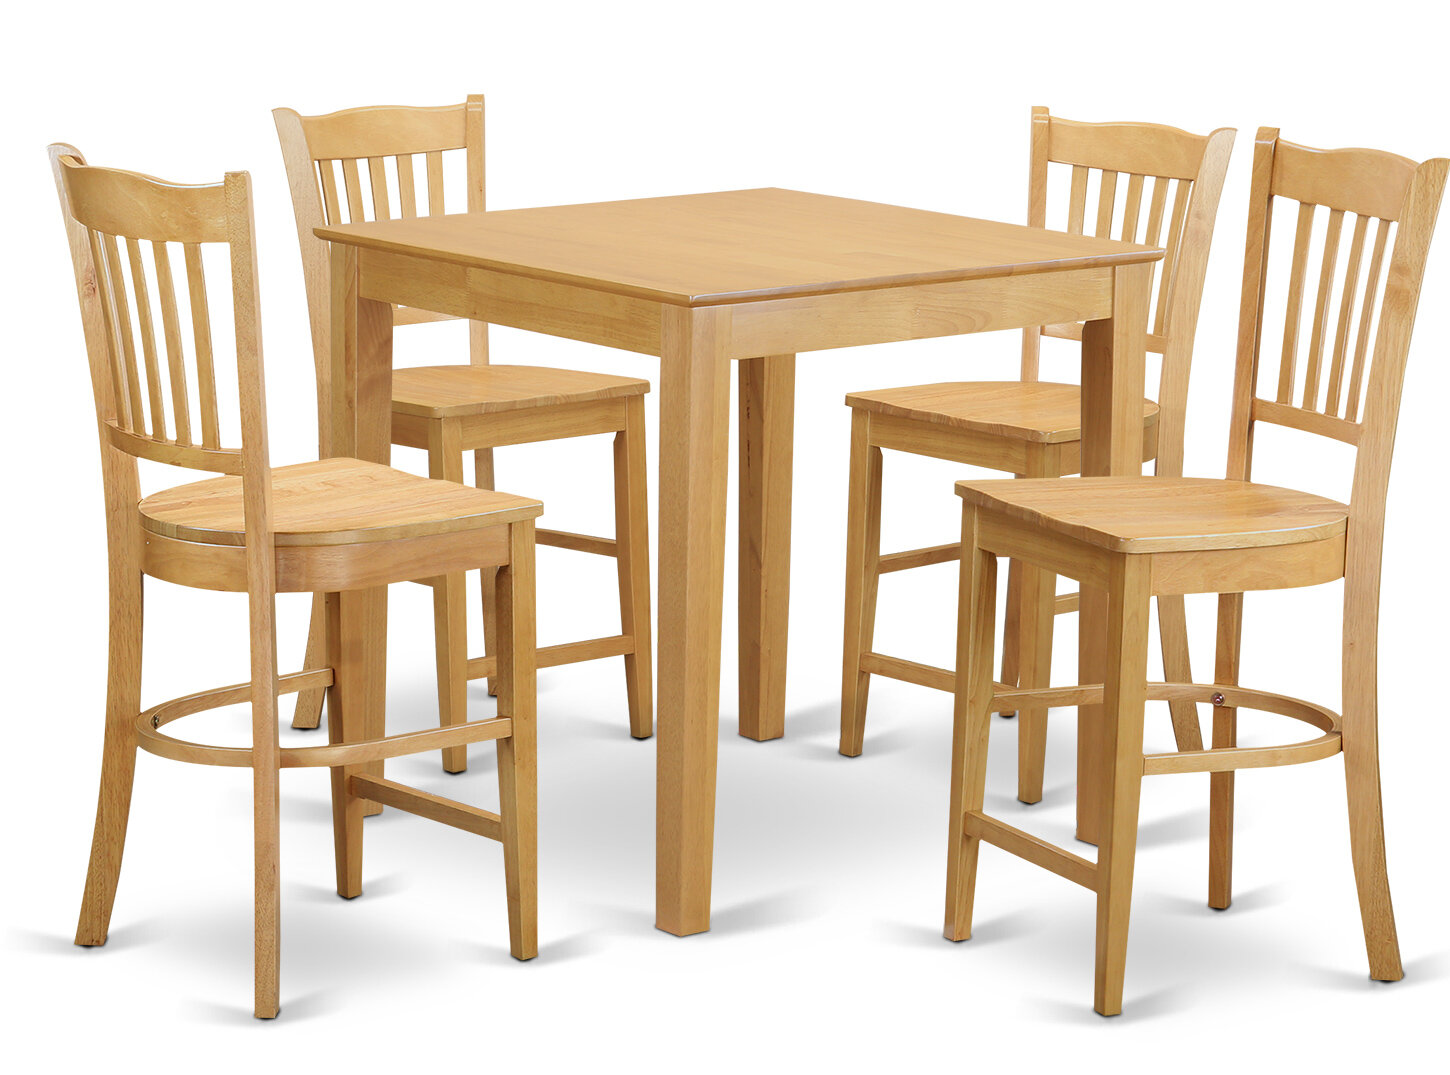 Terrific 5 Piece Counter Height Pub Table Set Onthecornerstone Fun Painted Chair Ideas Images Onthecornerstoneorg